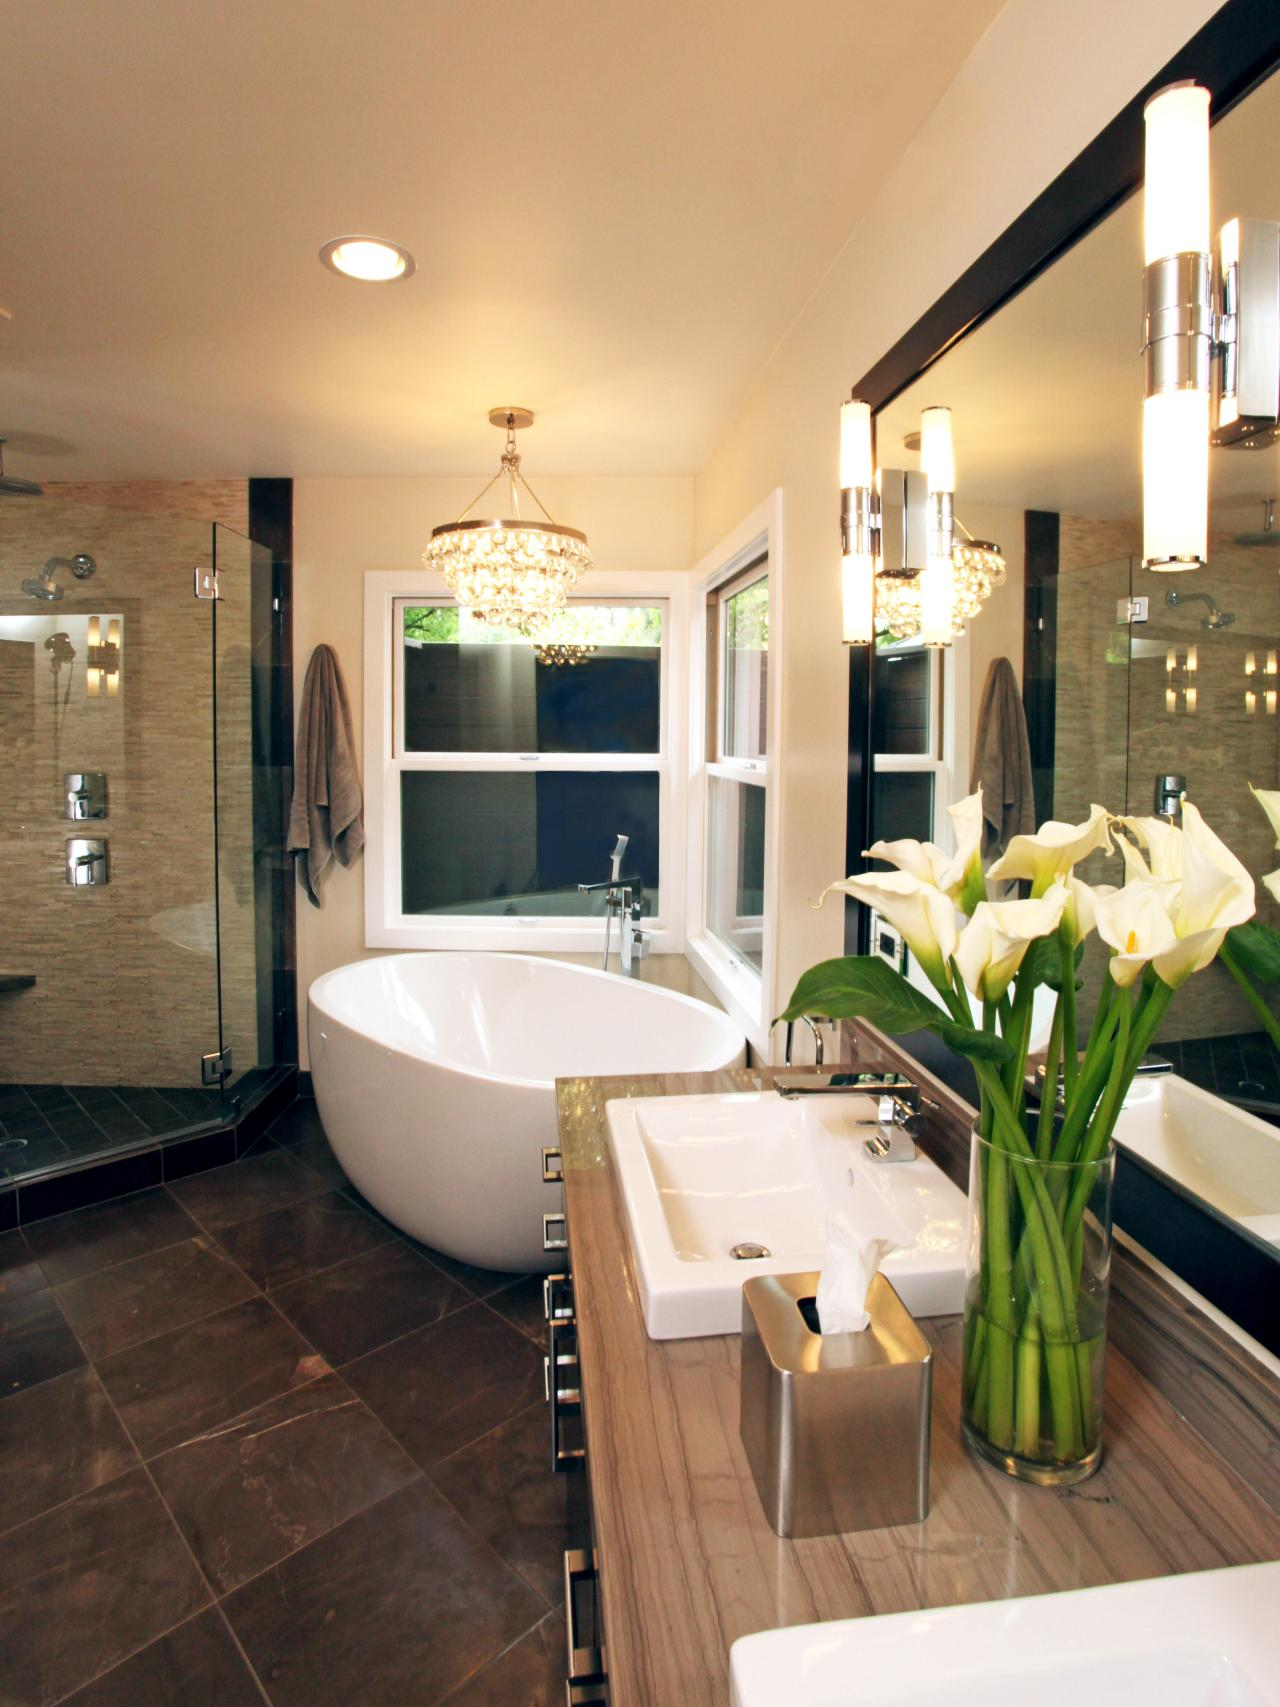 20 luxurious bathrooms with elegant chandelier lighting - Pictures of bathroom designs ...